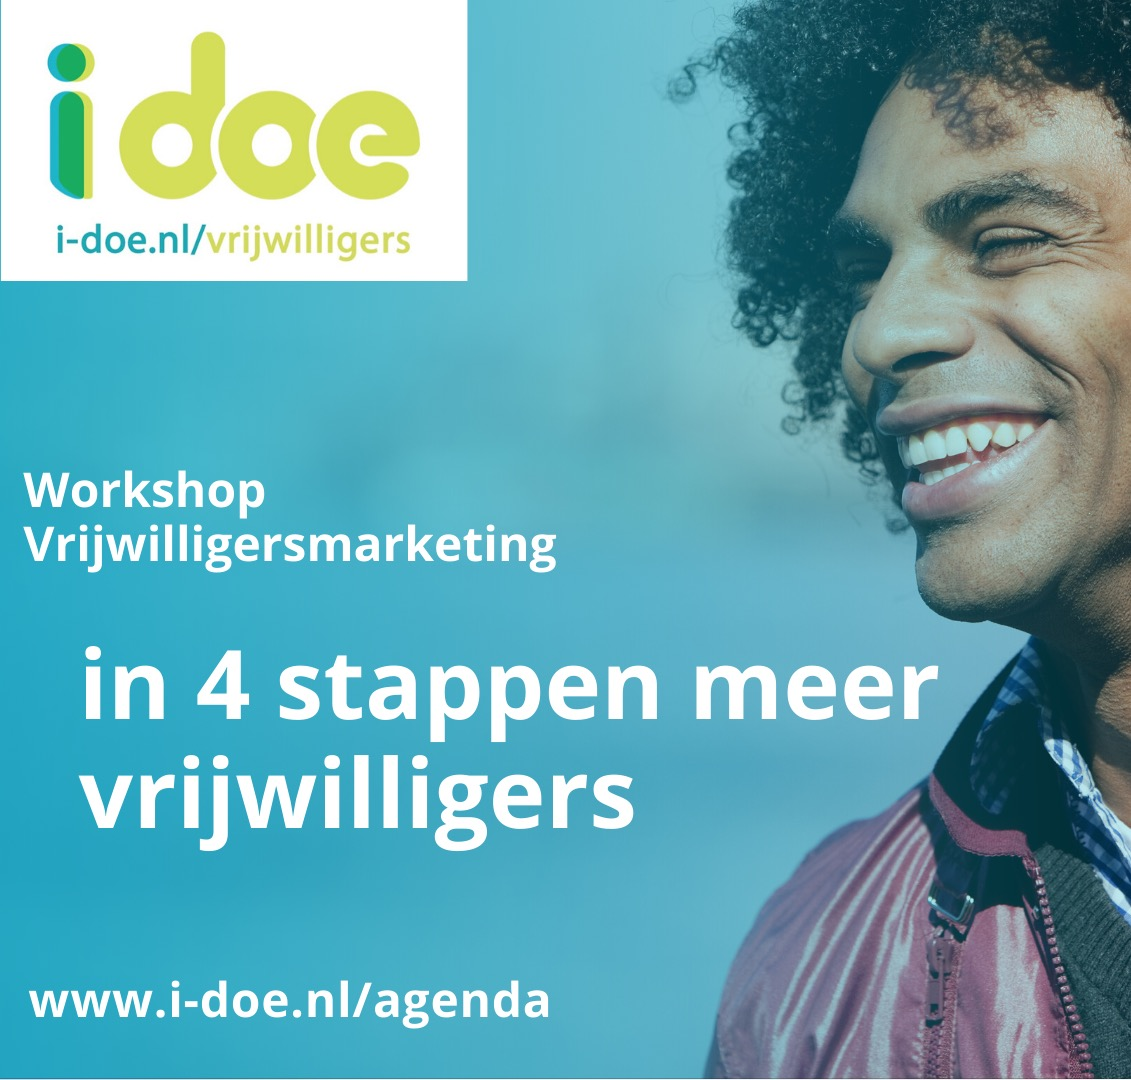 Workshop Vrijwilligersmarketing